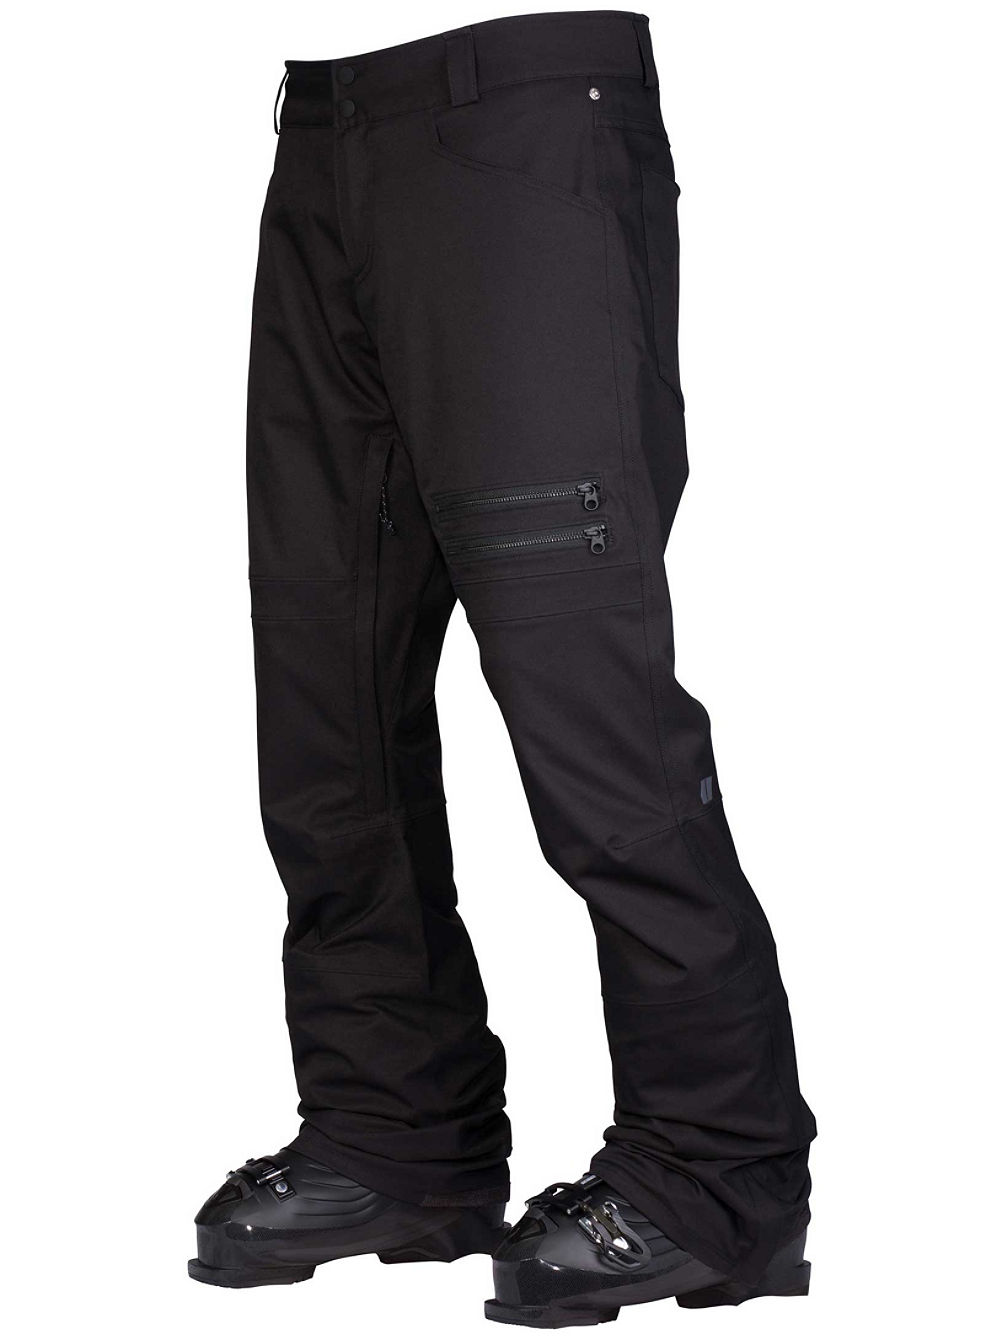 Atmore Stretch Pants